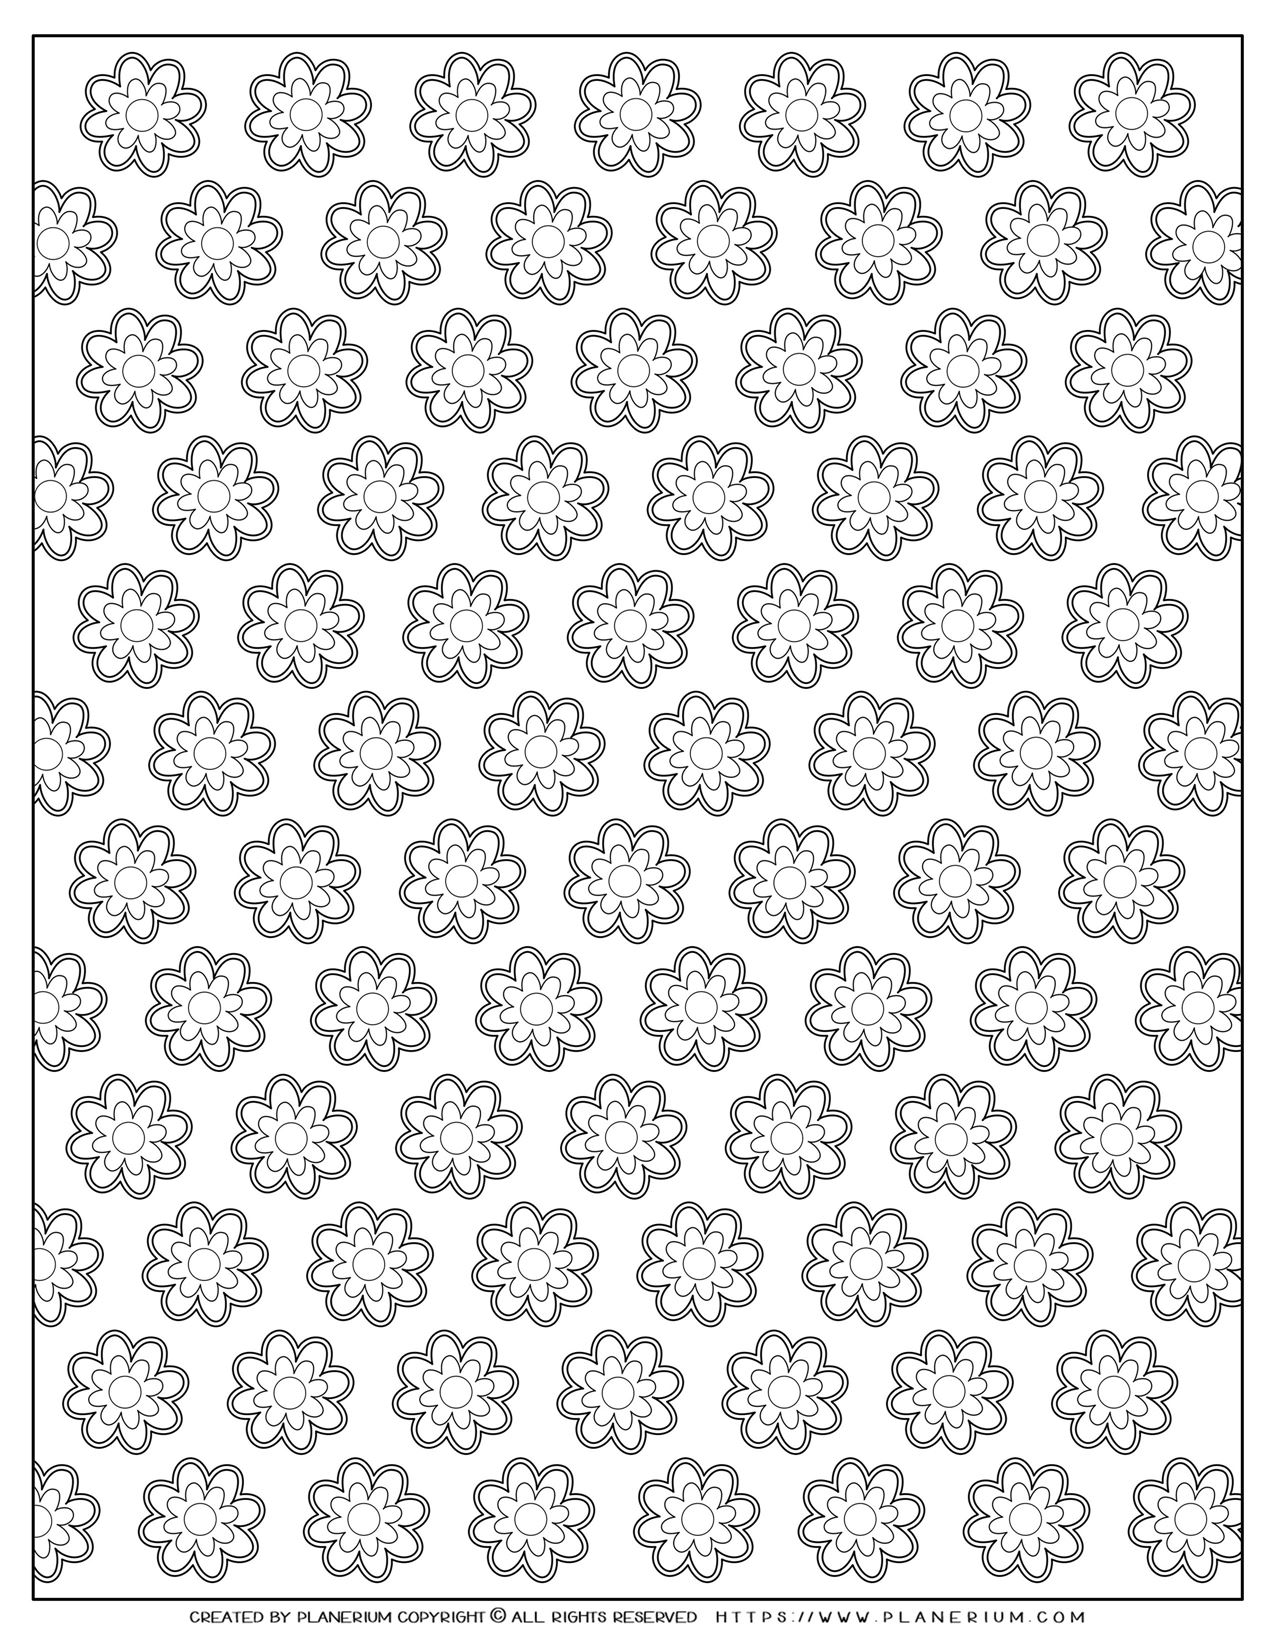 Adult Coloring Pages with Nested Flowers Pattern | Planerium